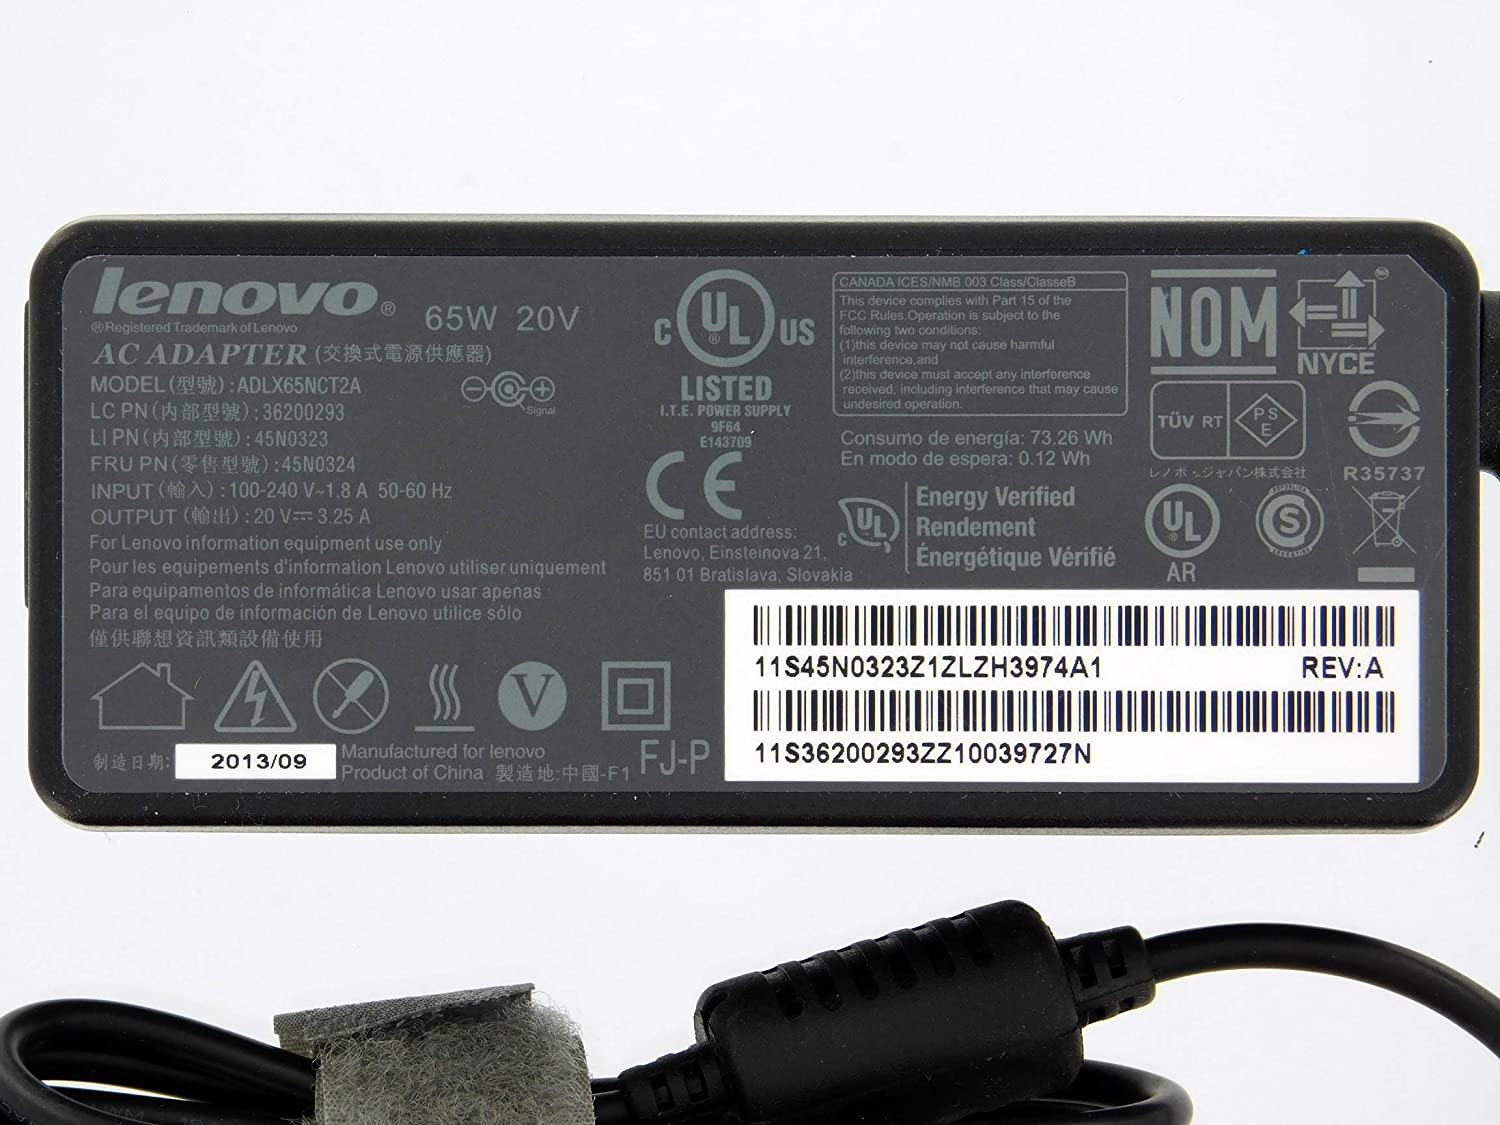 Amazon.com: Original OEM Lenovo 45N0121 Fru PN: 45N0122 65W 20V 3.25A Notebook Ac Adapter: Electronics